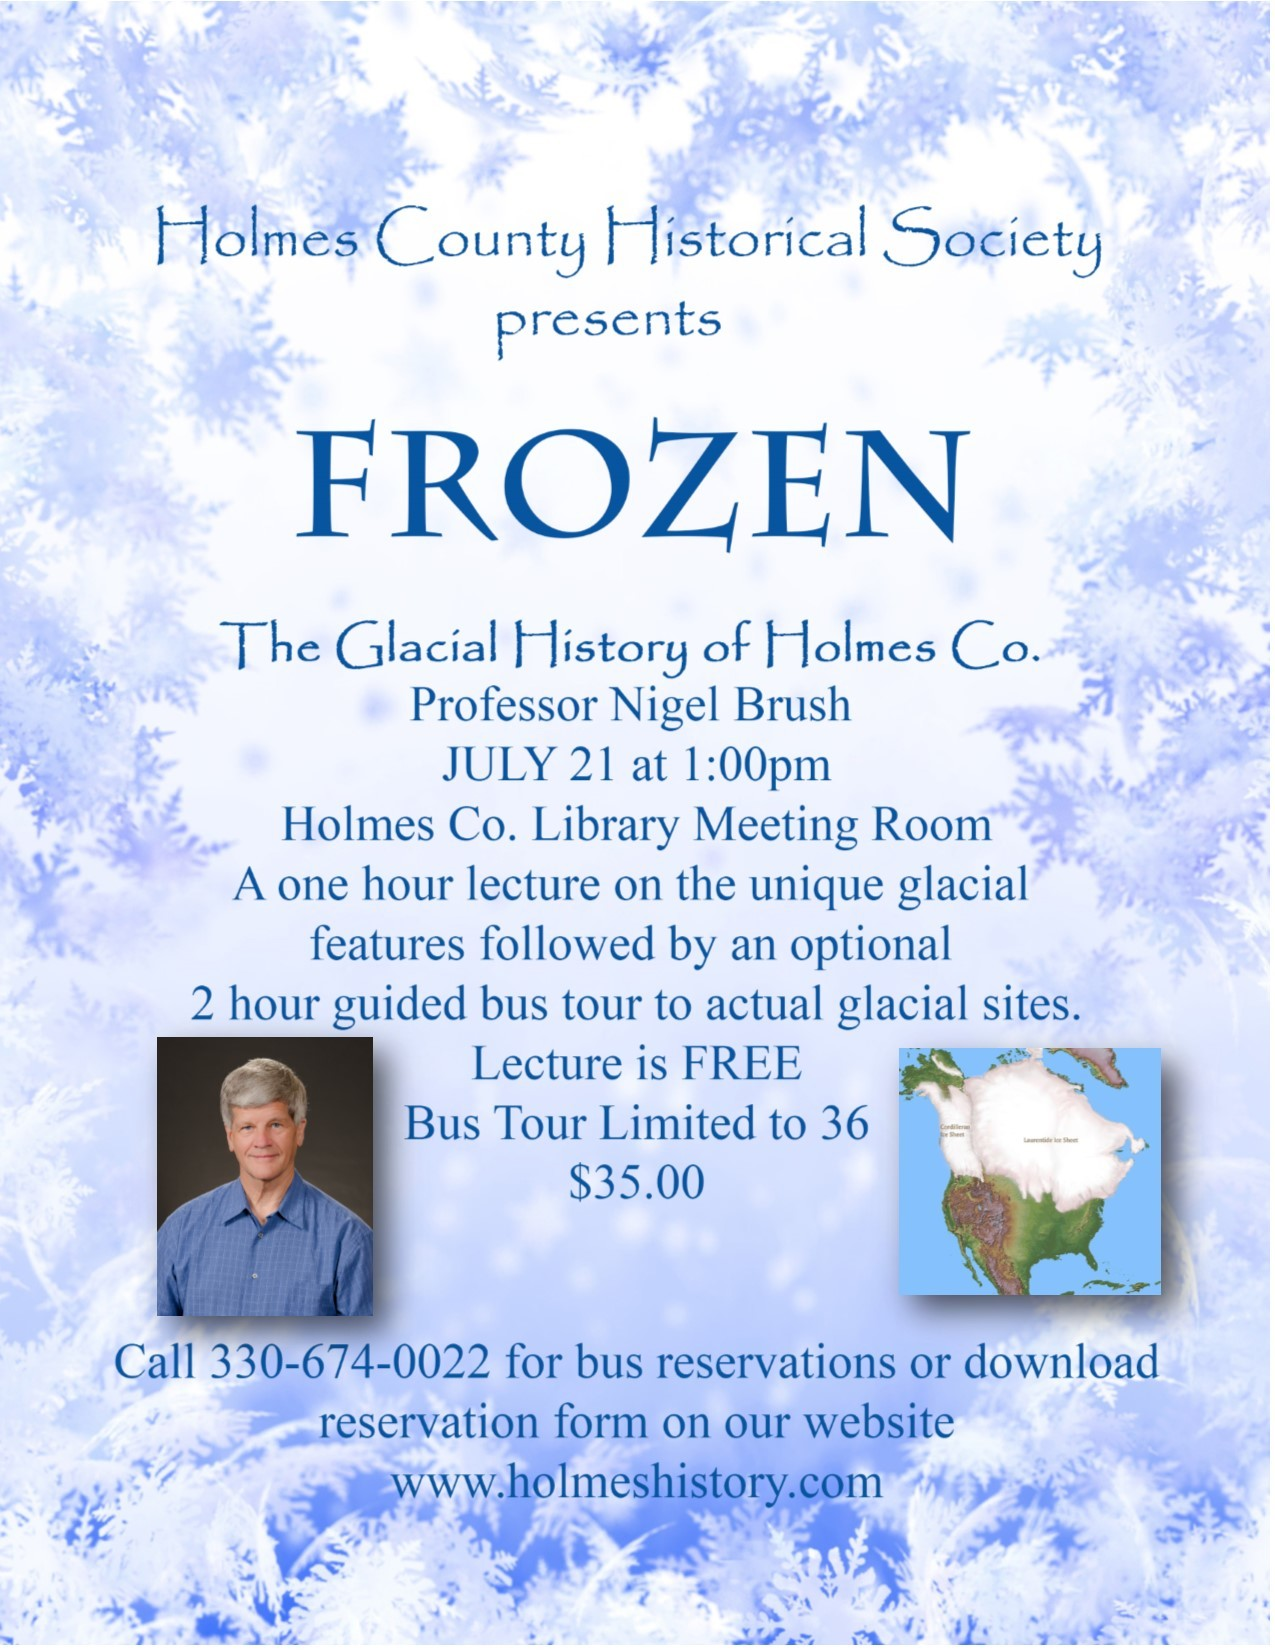 FROZEN - Th Glacial History of Holmes County